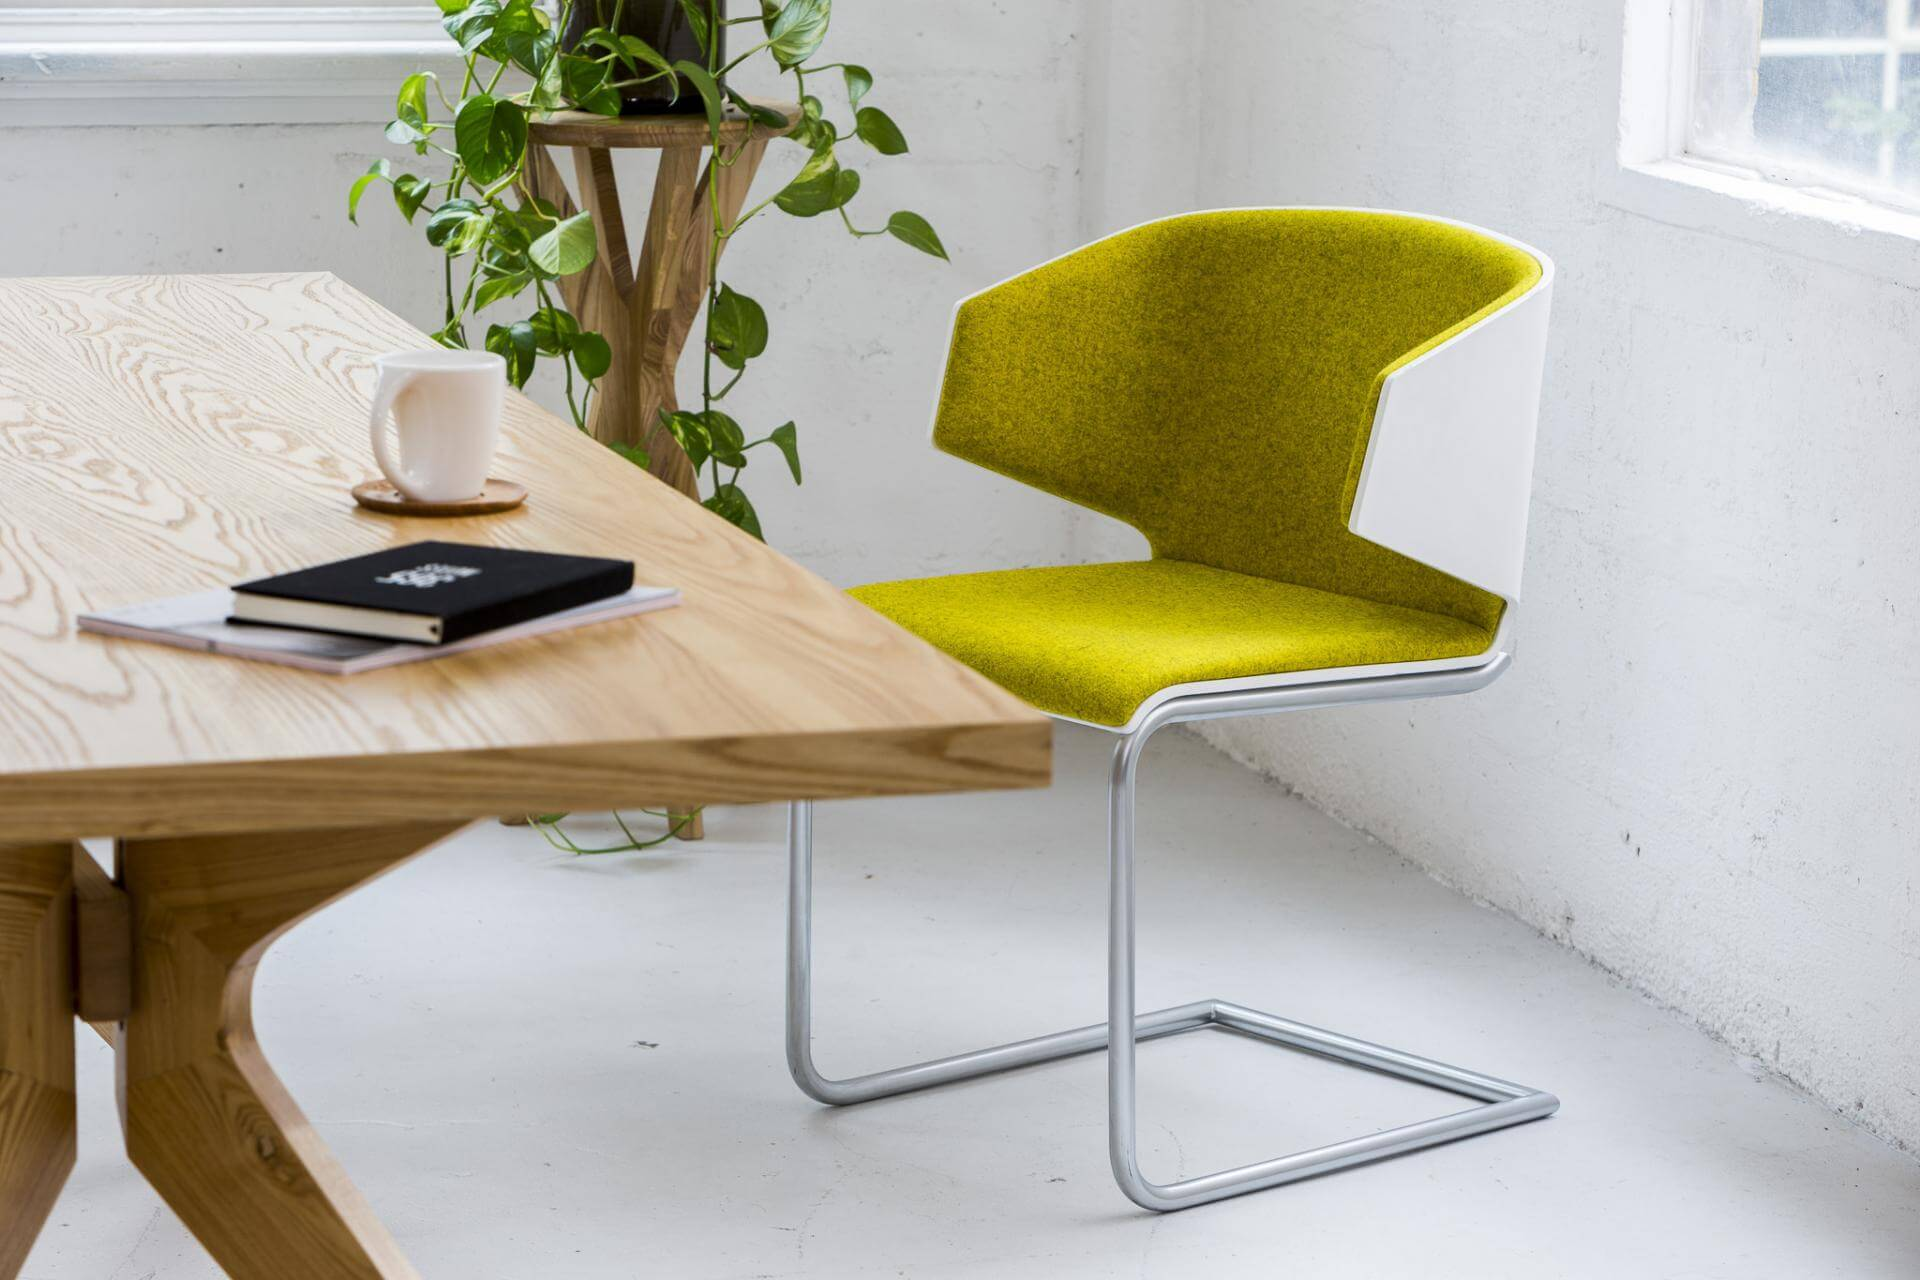 modern yellow chair with table and props for ecommerce product photography